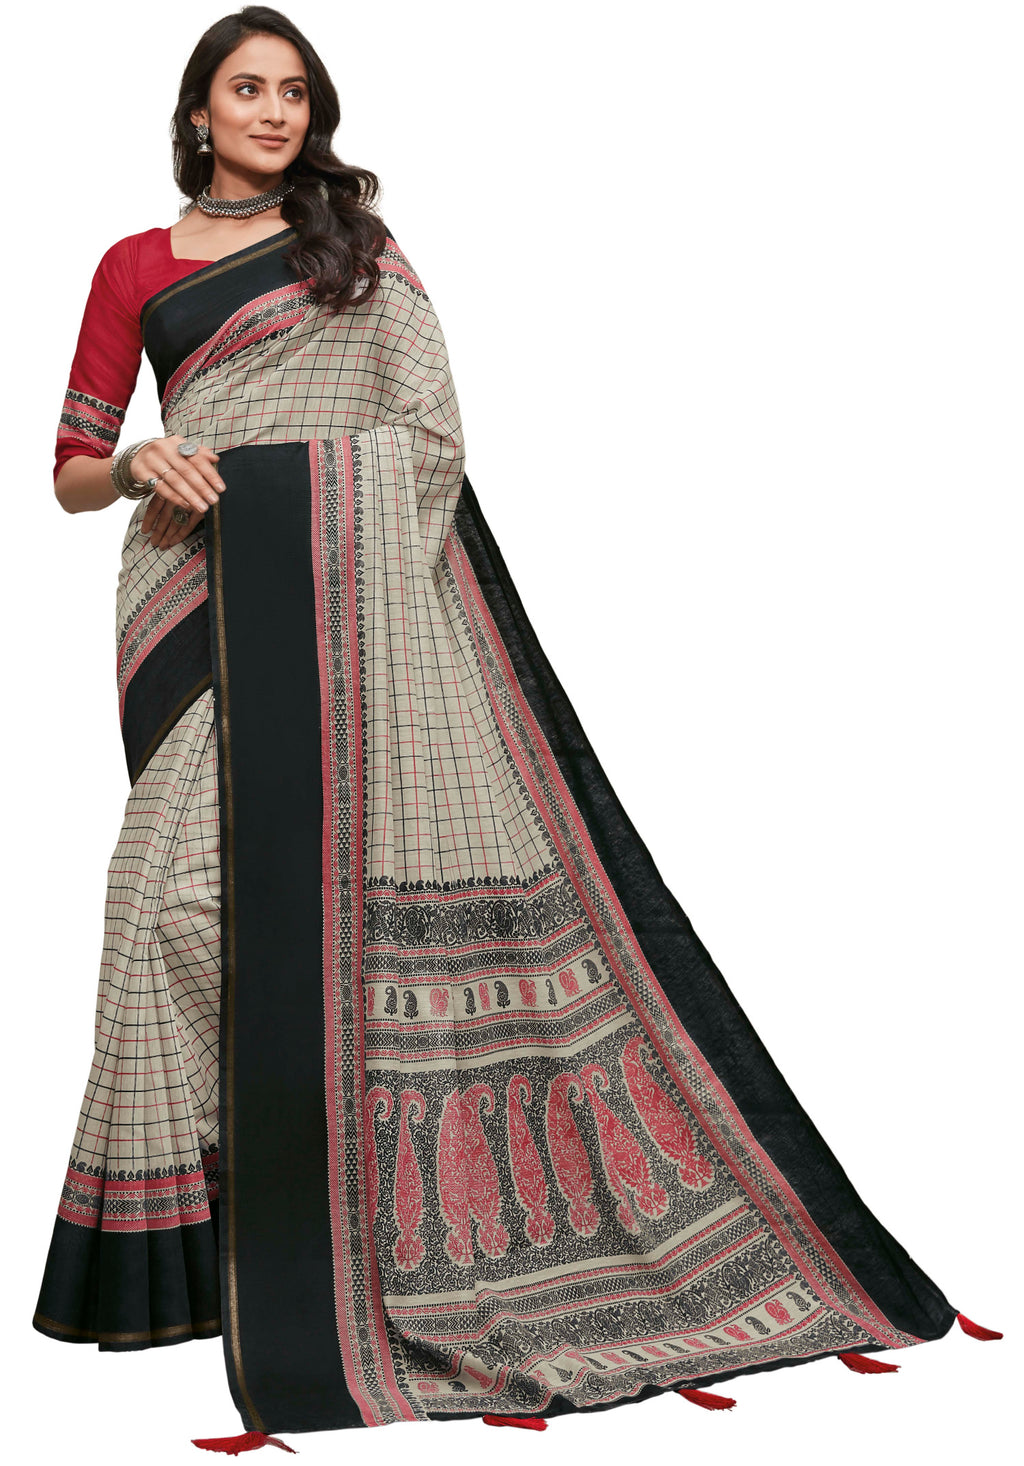 Off White & Black Color Cotton Festive & Function Wear Sarees NYF-8506